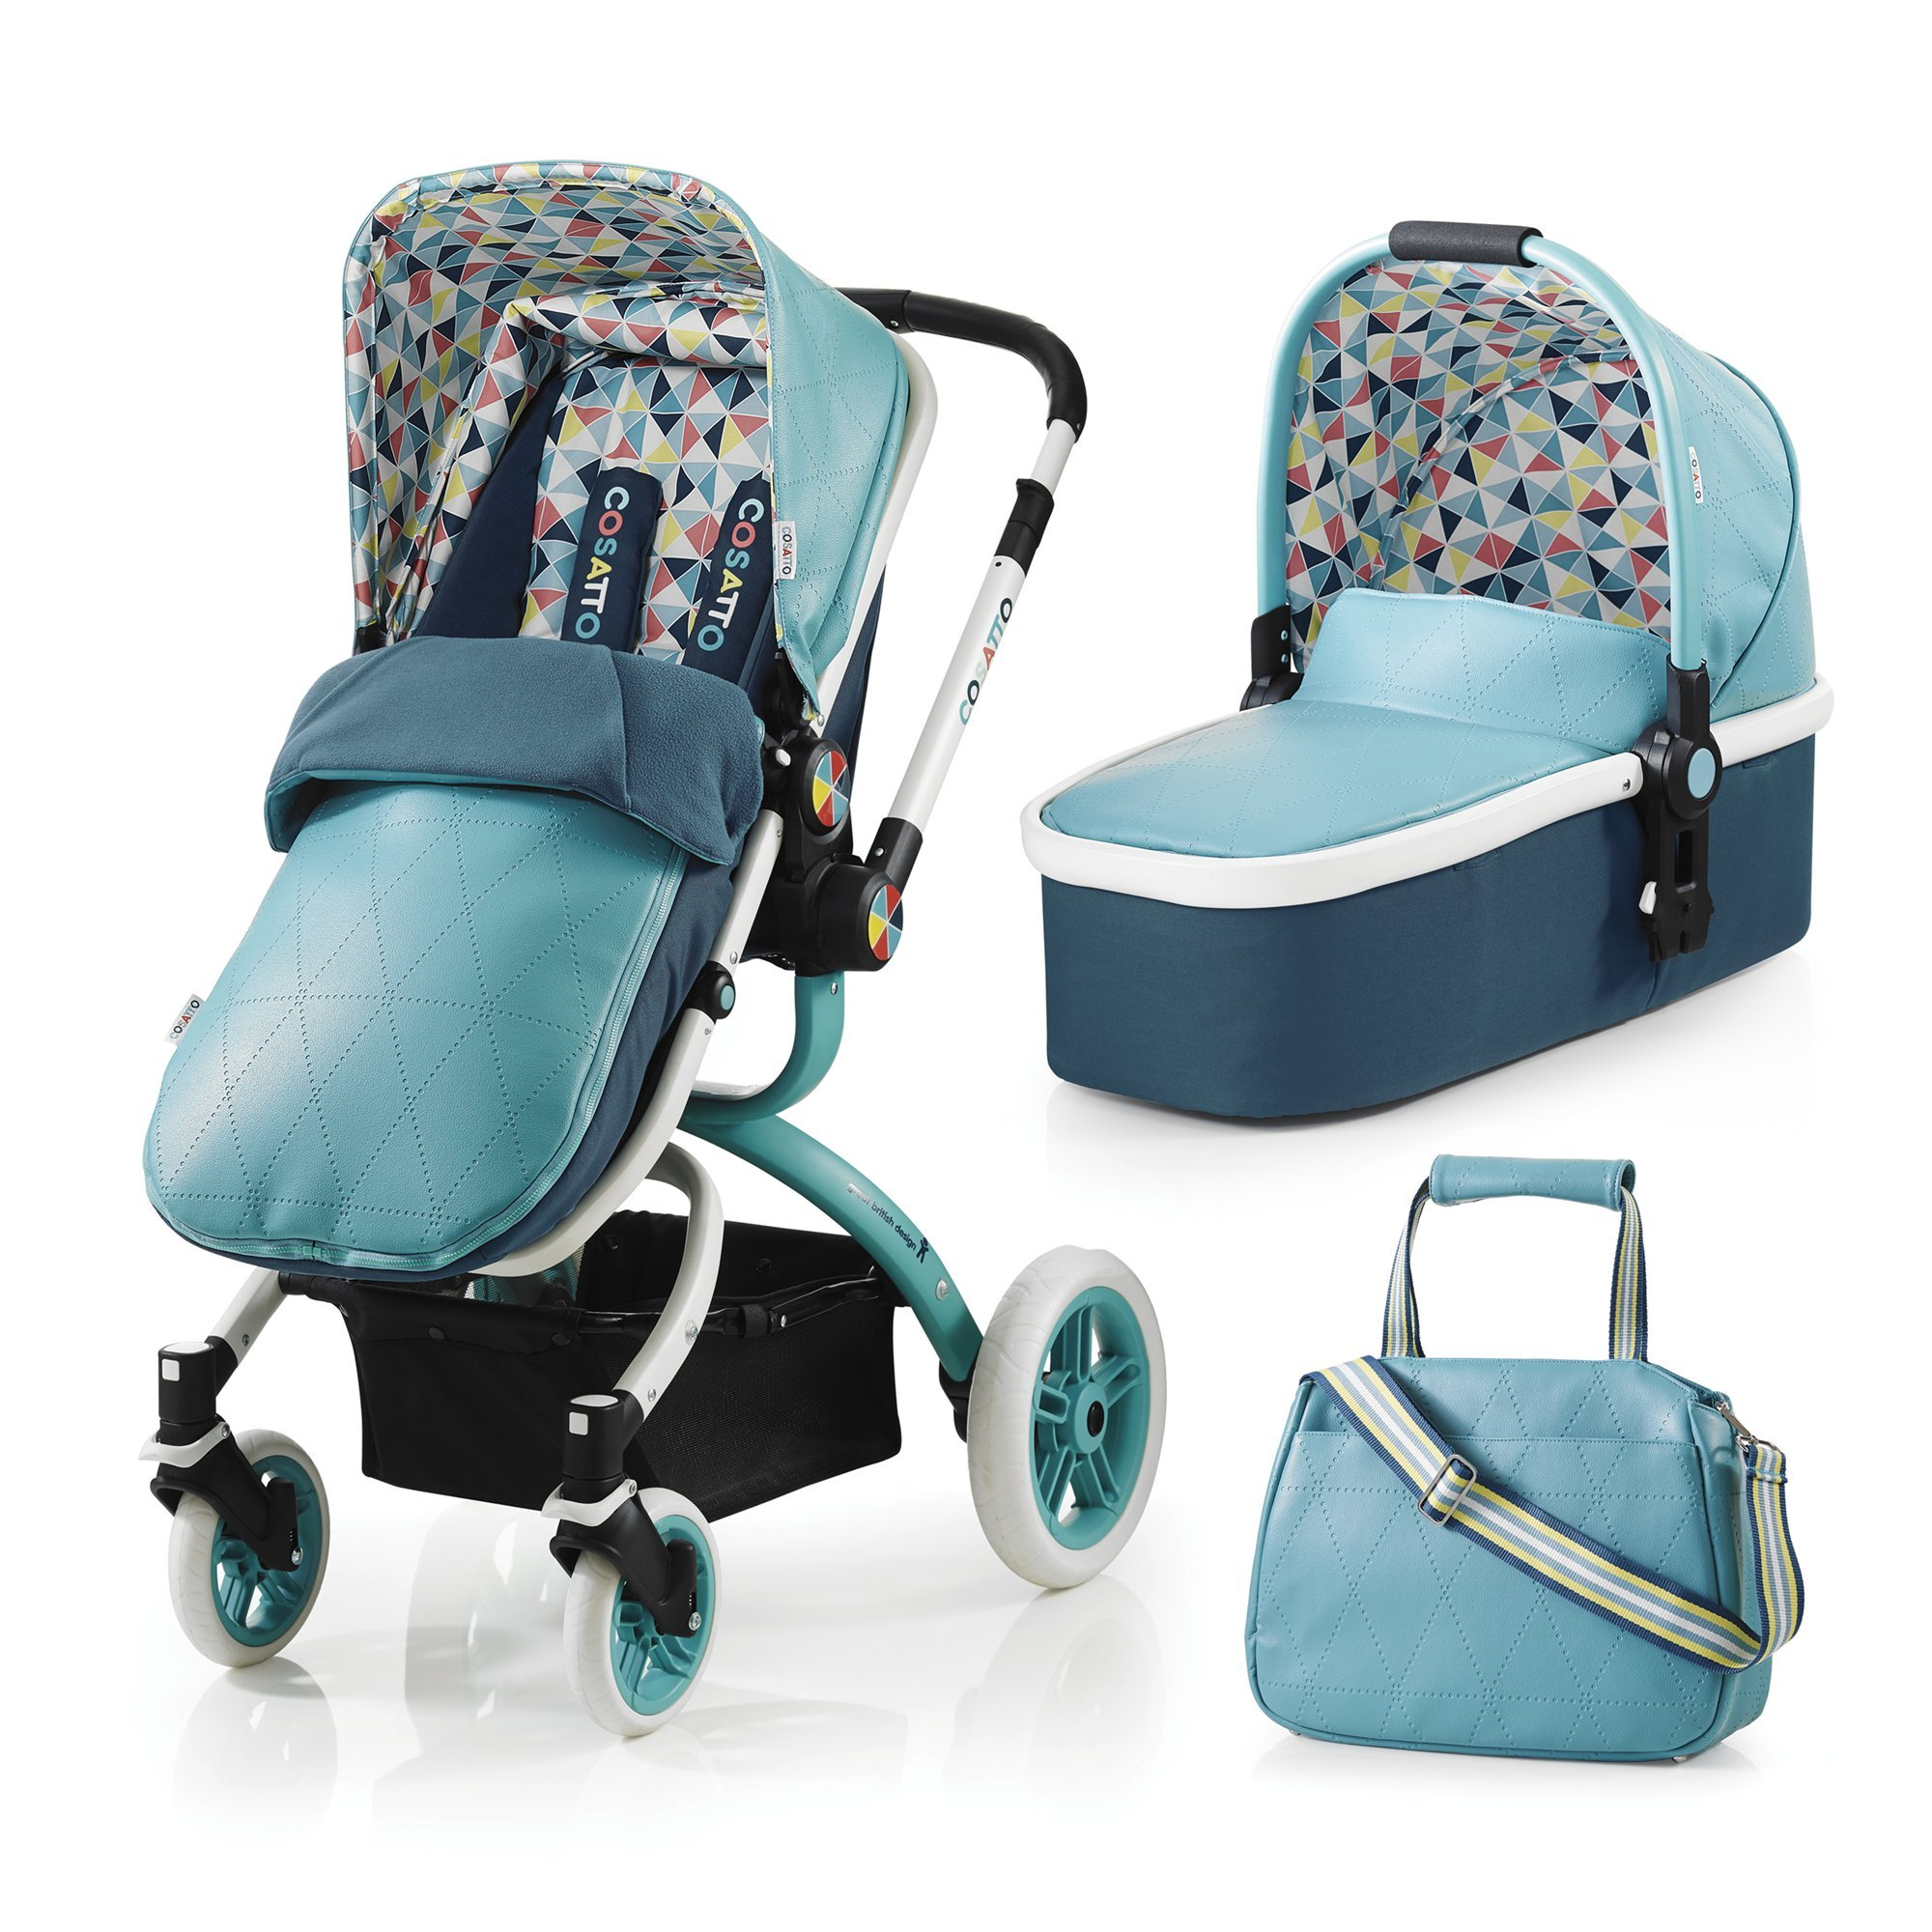 Cosatto Giggle 3-in-1 Travel System Giggle Car Seat Compatible